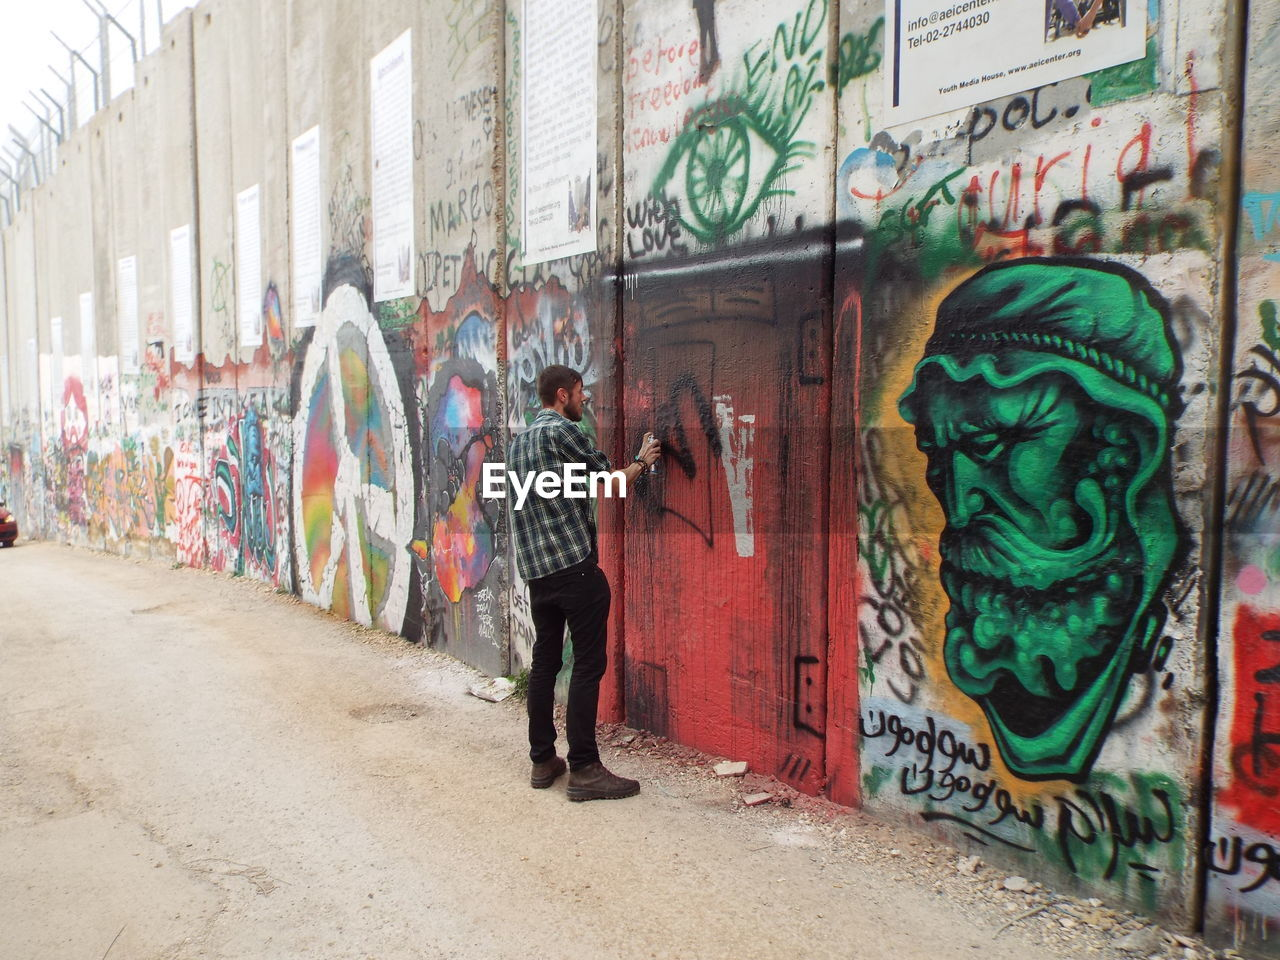 graffiti, street art, art and craft, artist, spray paint, creativity, full length, multi colored, real people, men, building exterior, standing, architecture, built structure, lifestyles, one person, aerosol can, day, outdoors, spraying, painted image, city, adult, only men, people, adults only